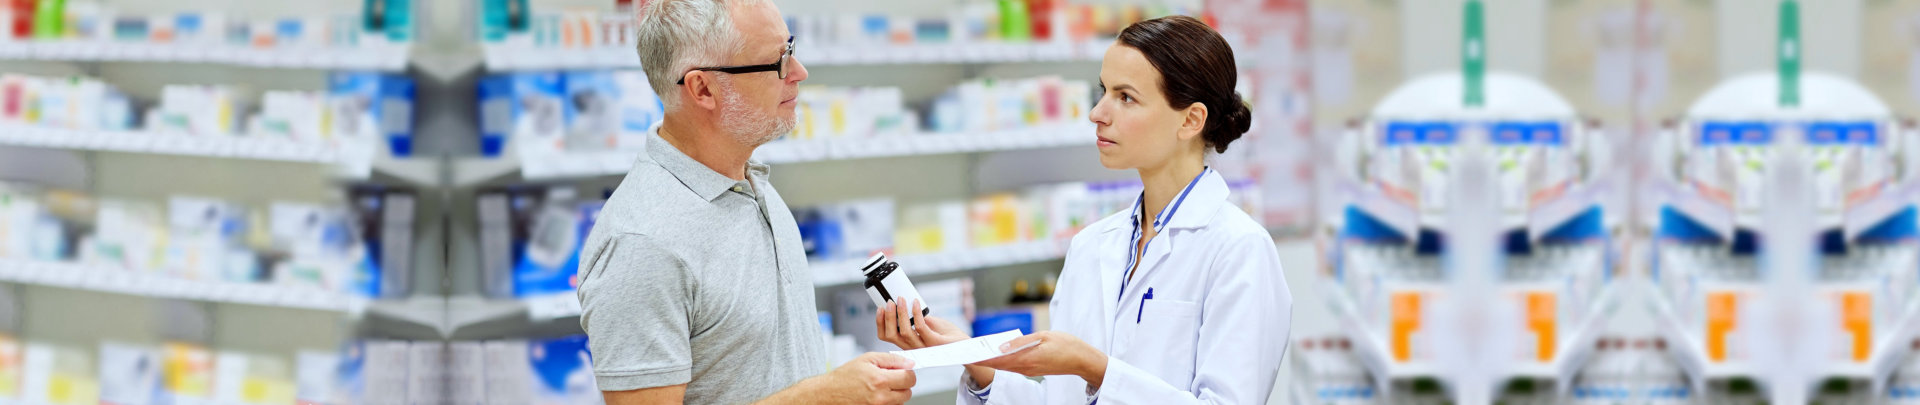 elderly customer consulting pharmacist with his medication